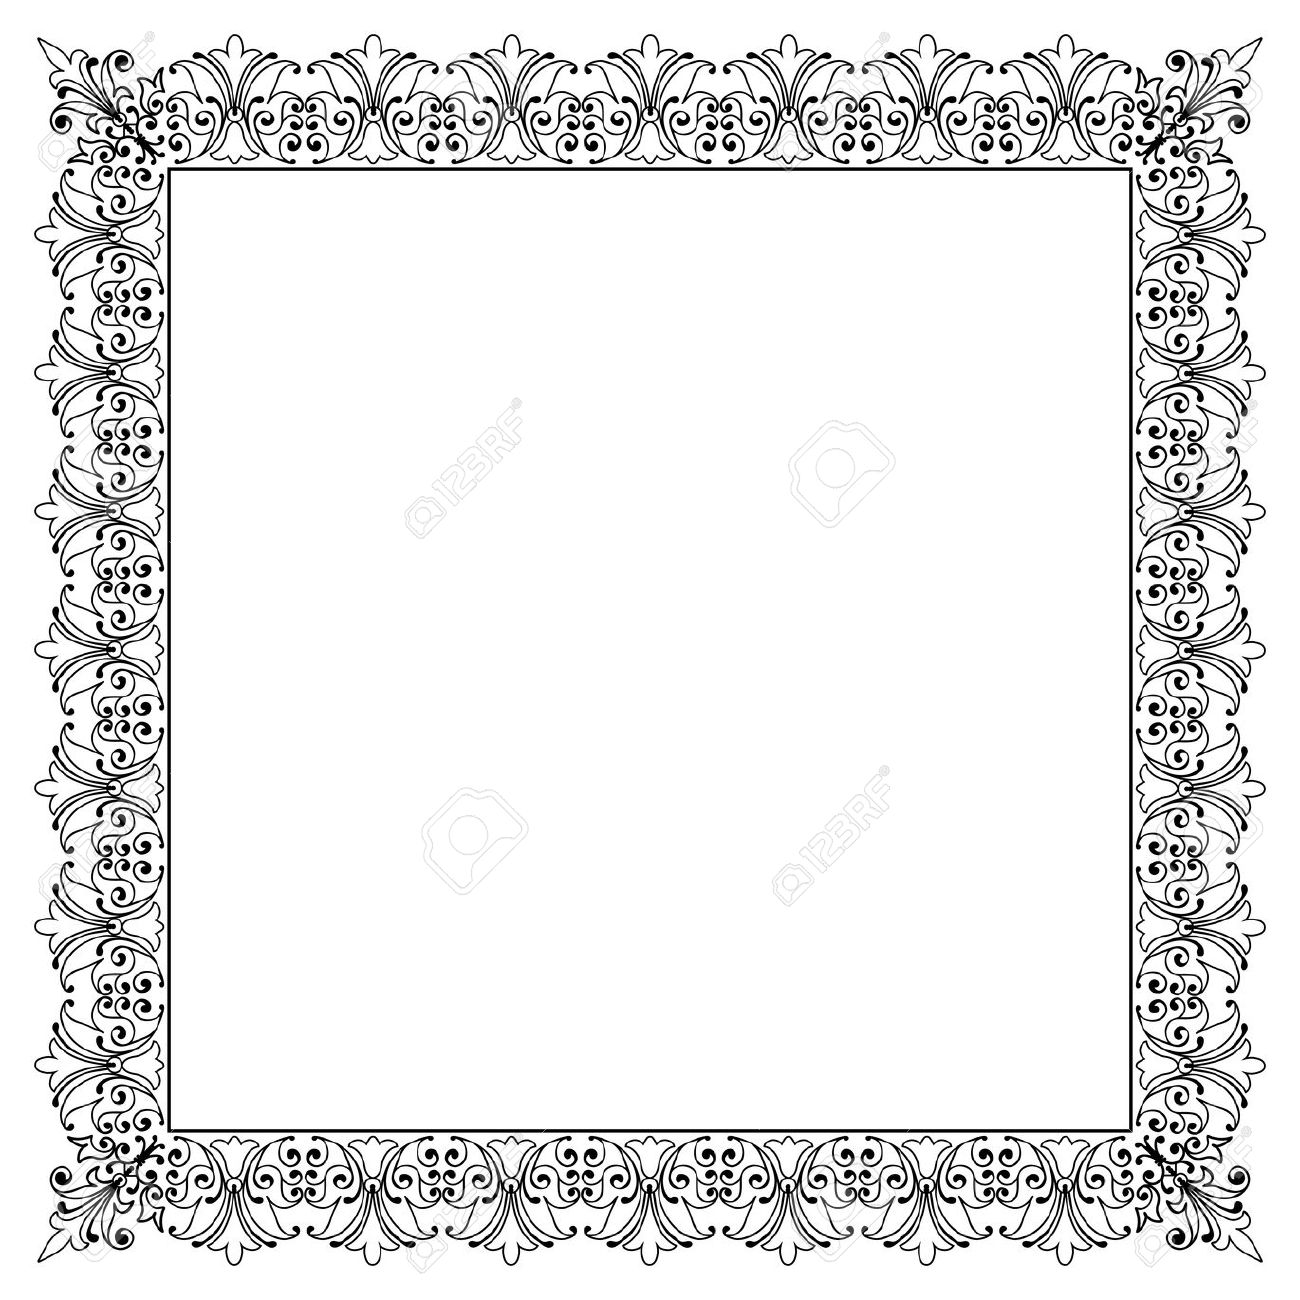 100 free certificate border templates certificate border free certificate border templates 100 certificate border design templates 100 scroll yadclub Gallery